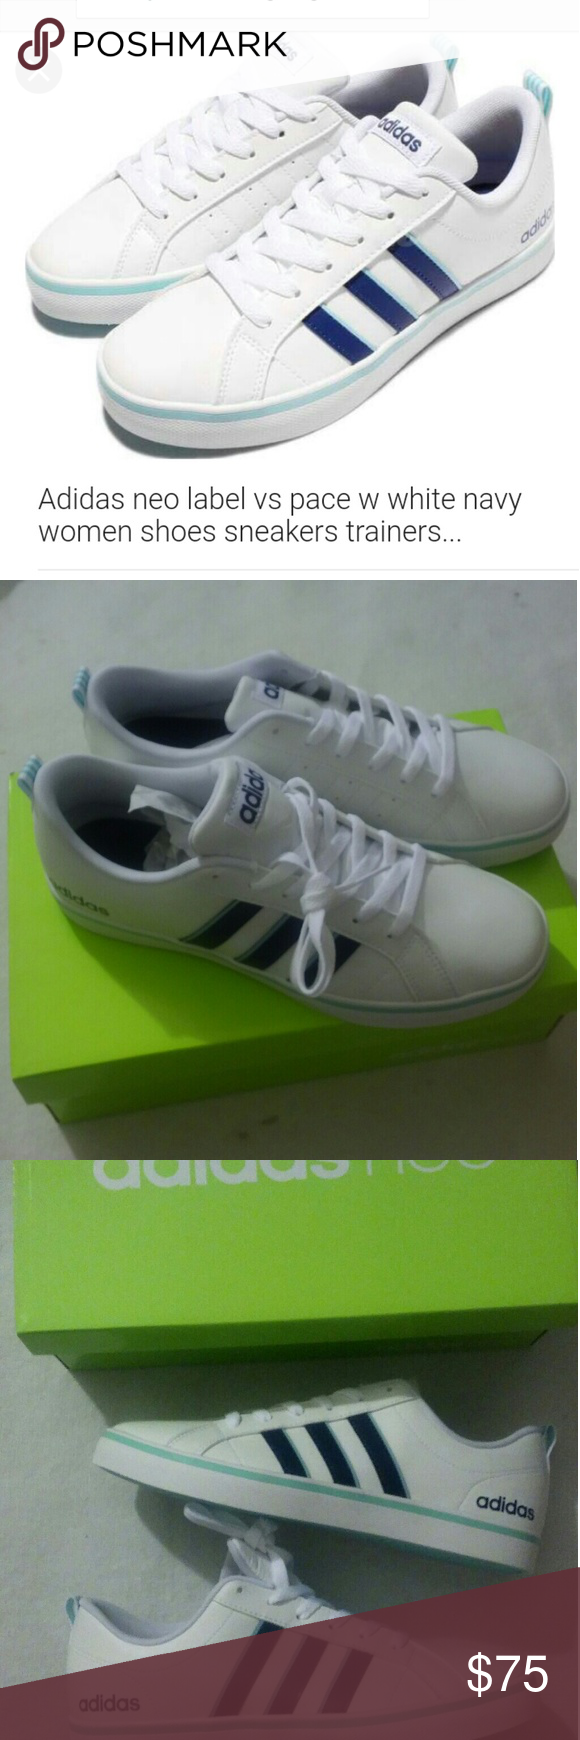 addidas Shoes  Sold Adidas Neo Label Vs Pace W White Navy